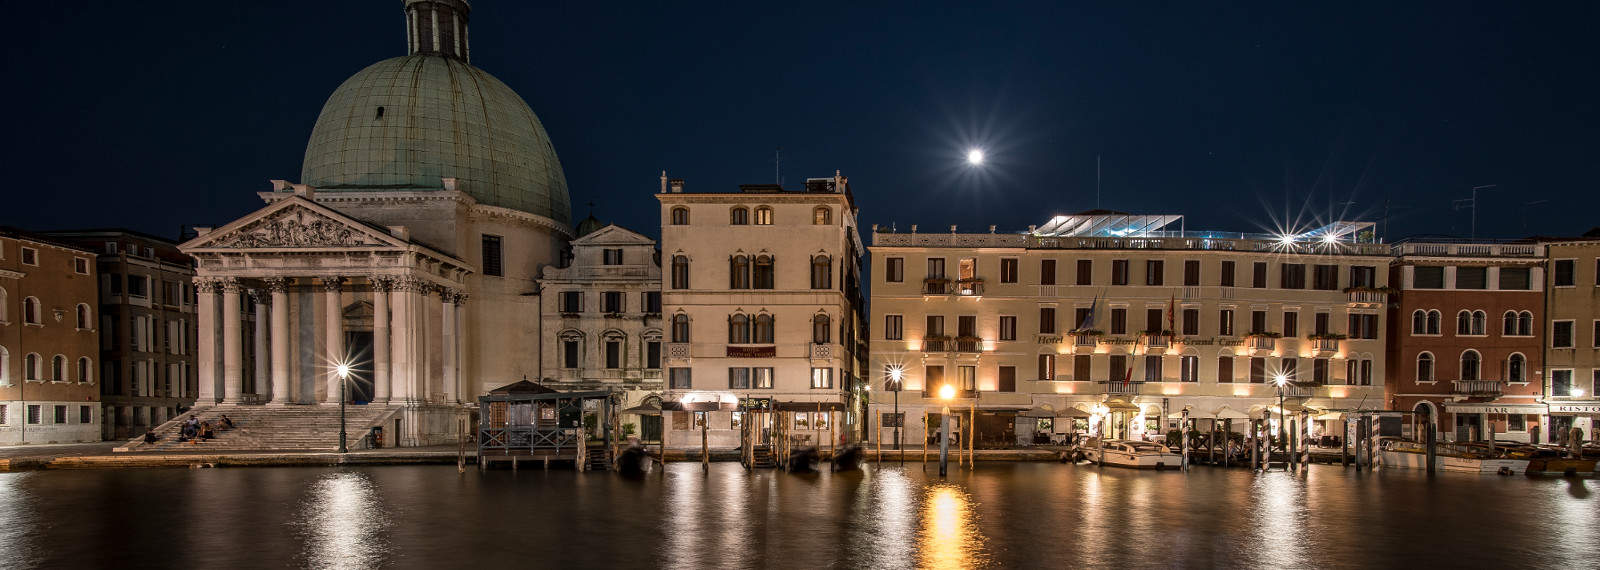 hotel carlton on the grand canal official site 4 stars. Black Bedroom Furniture Sets. Home Design Ideas